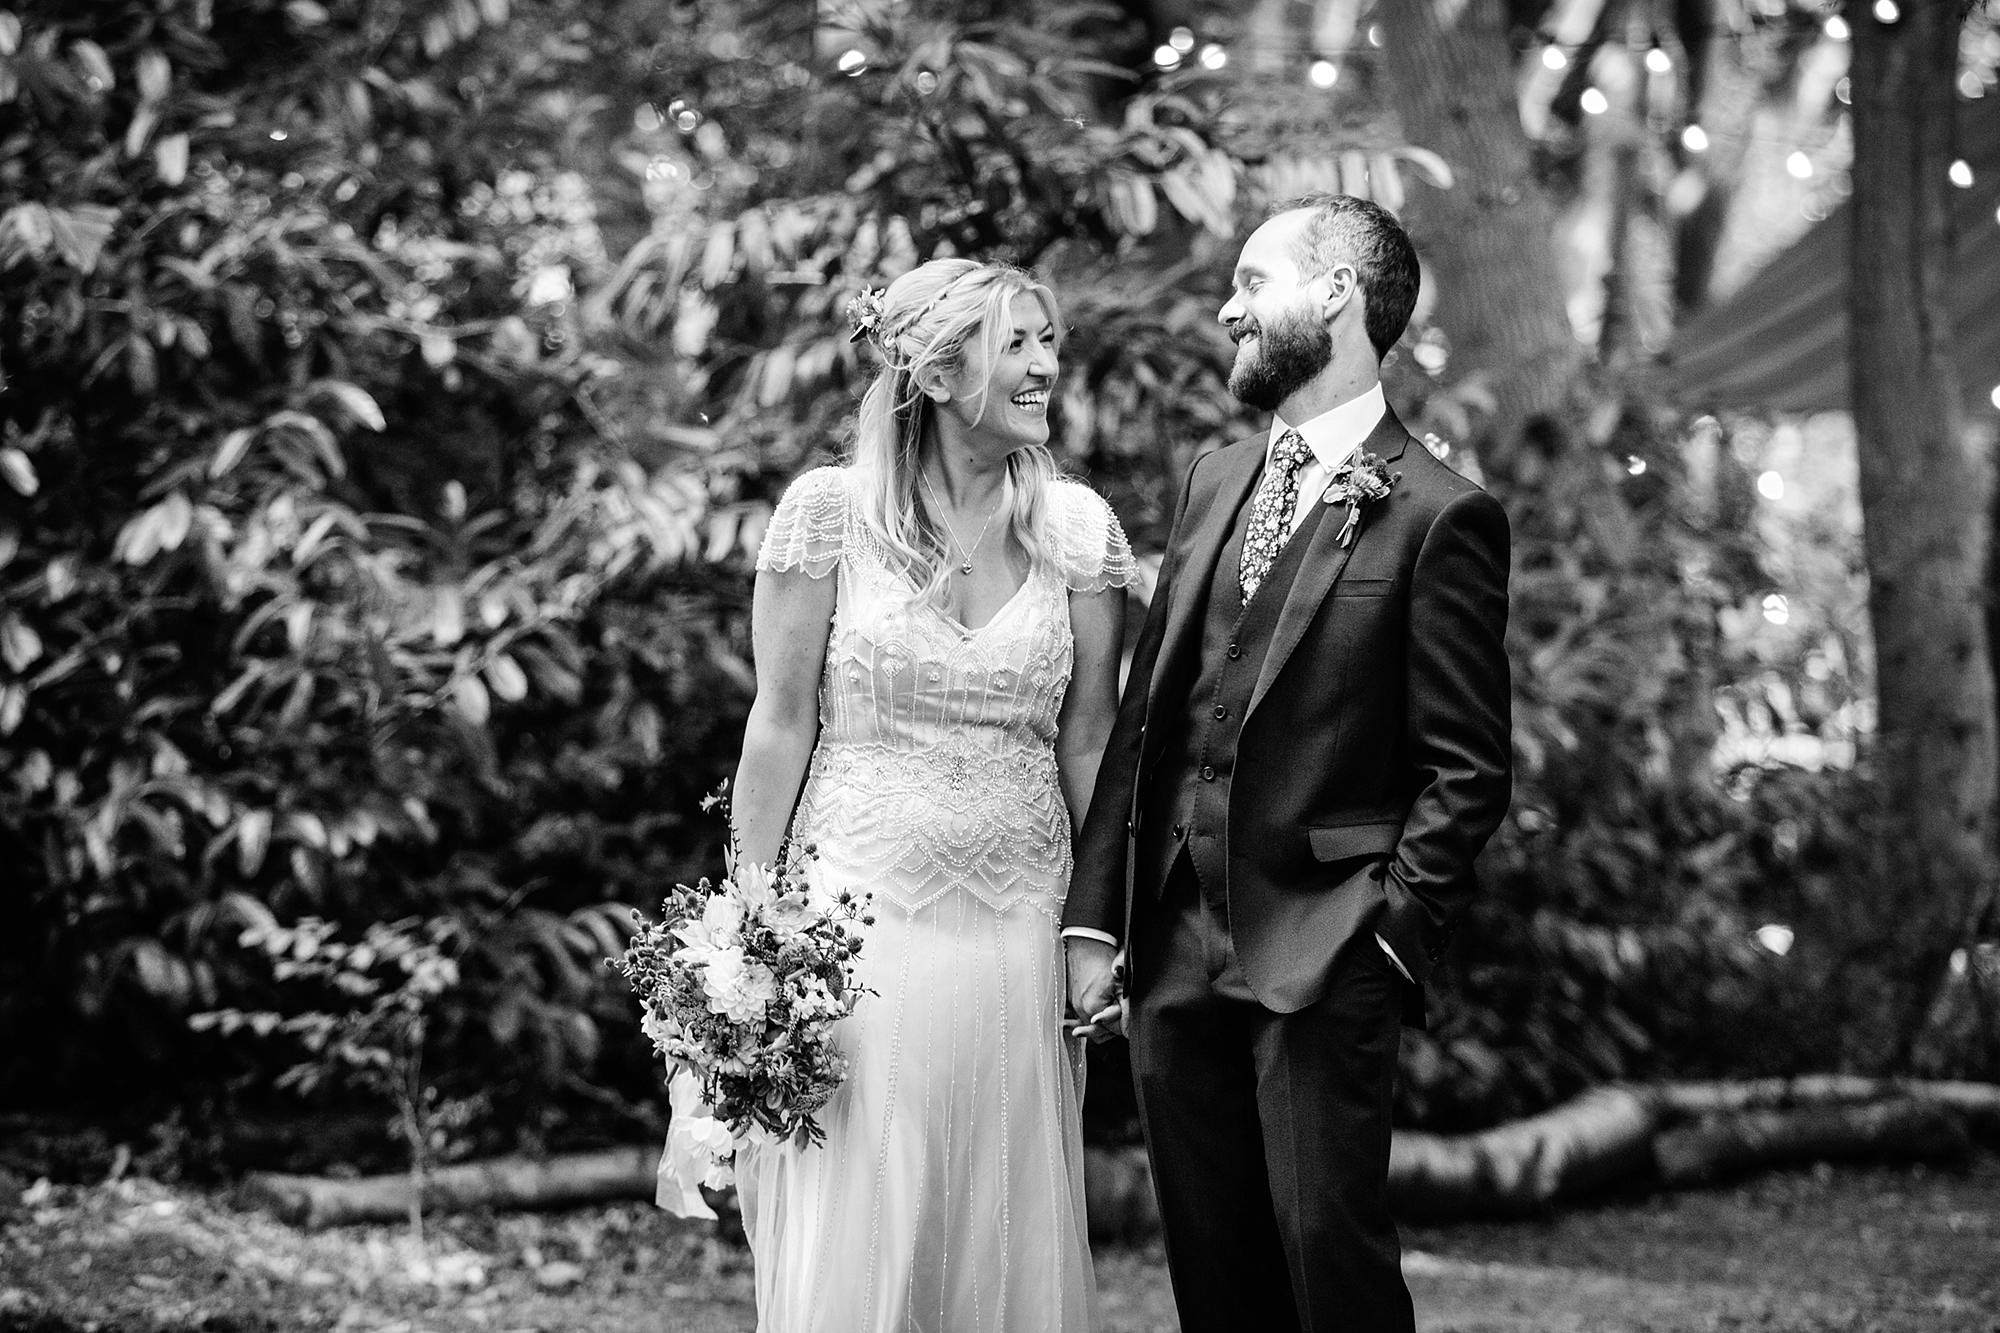 Woodland Weddings Tring bride and groom together